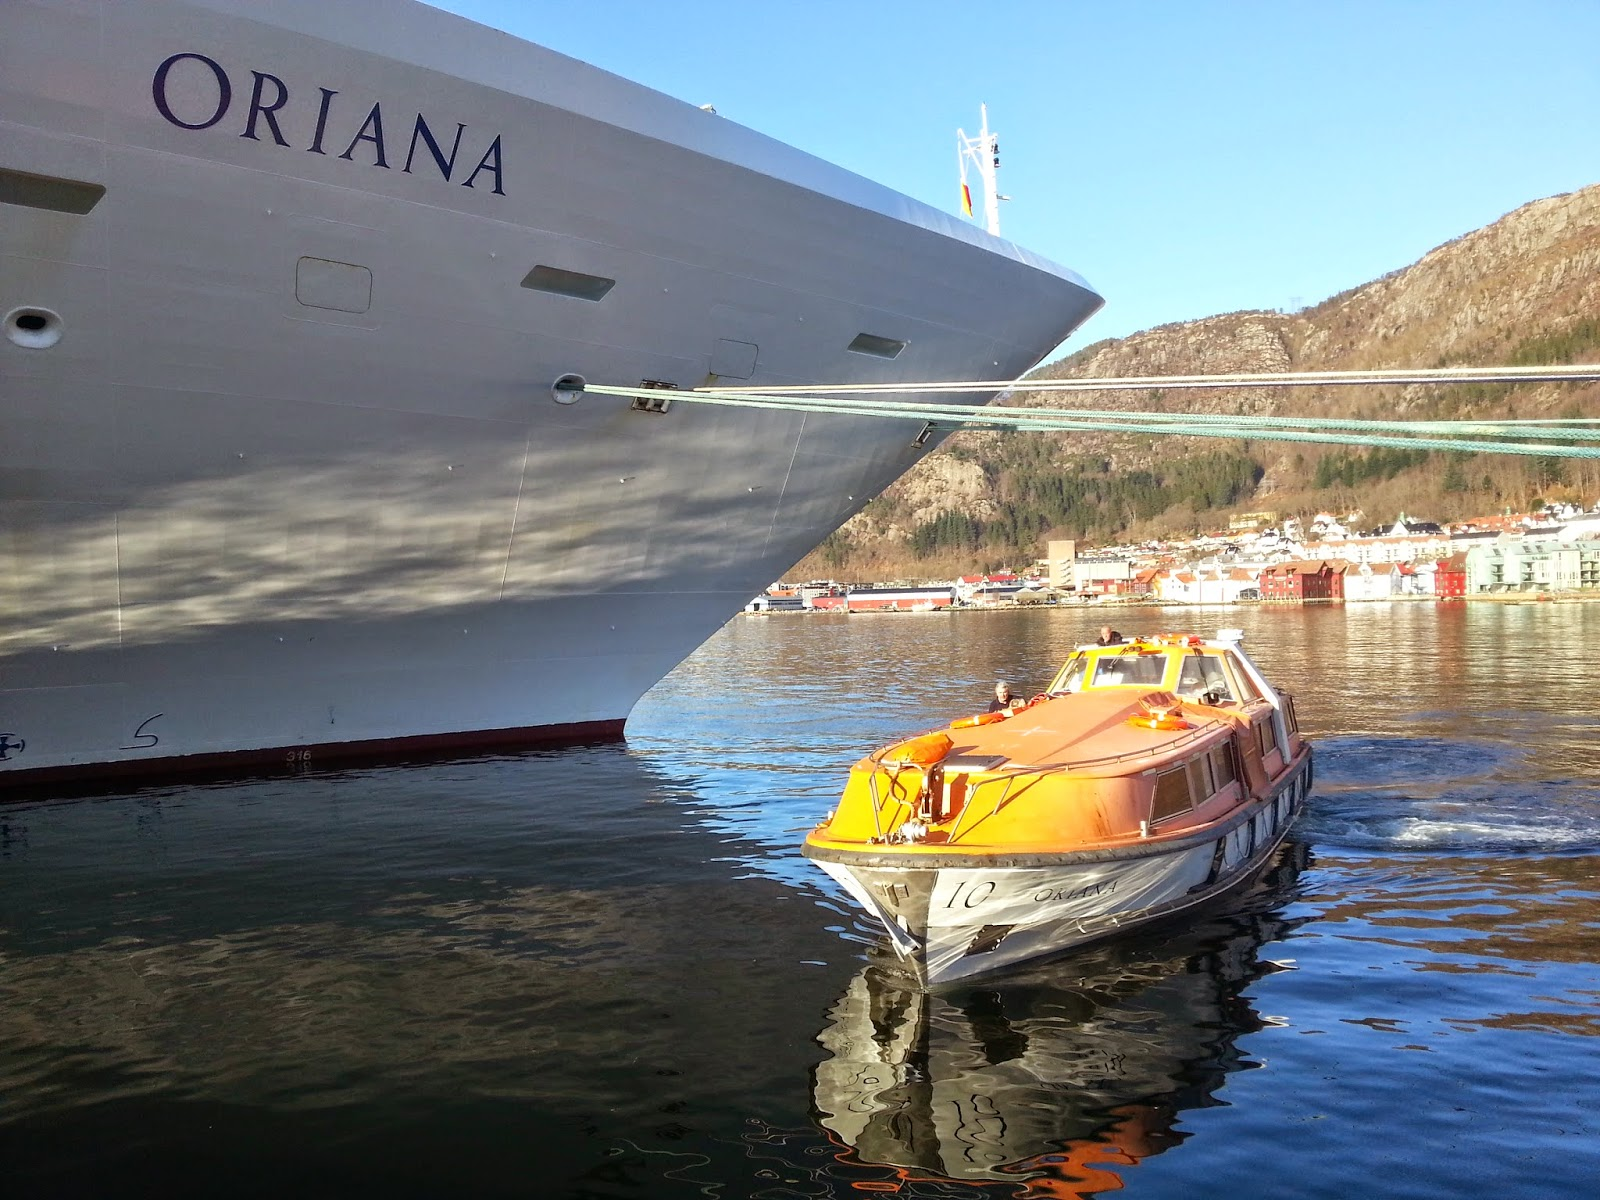 P&O Cruise Ship MV Oriana in Bergen, Norway